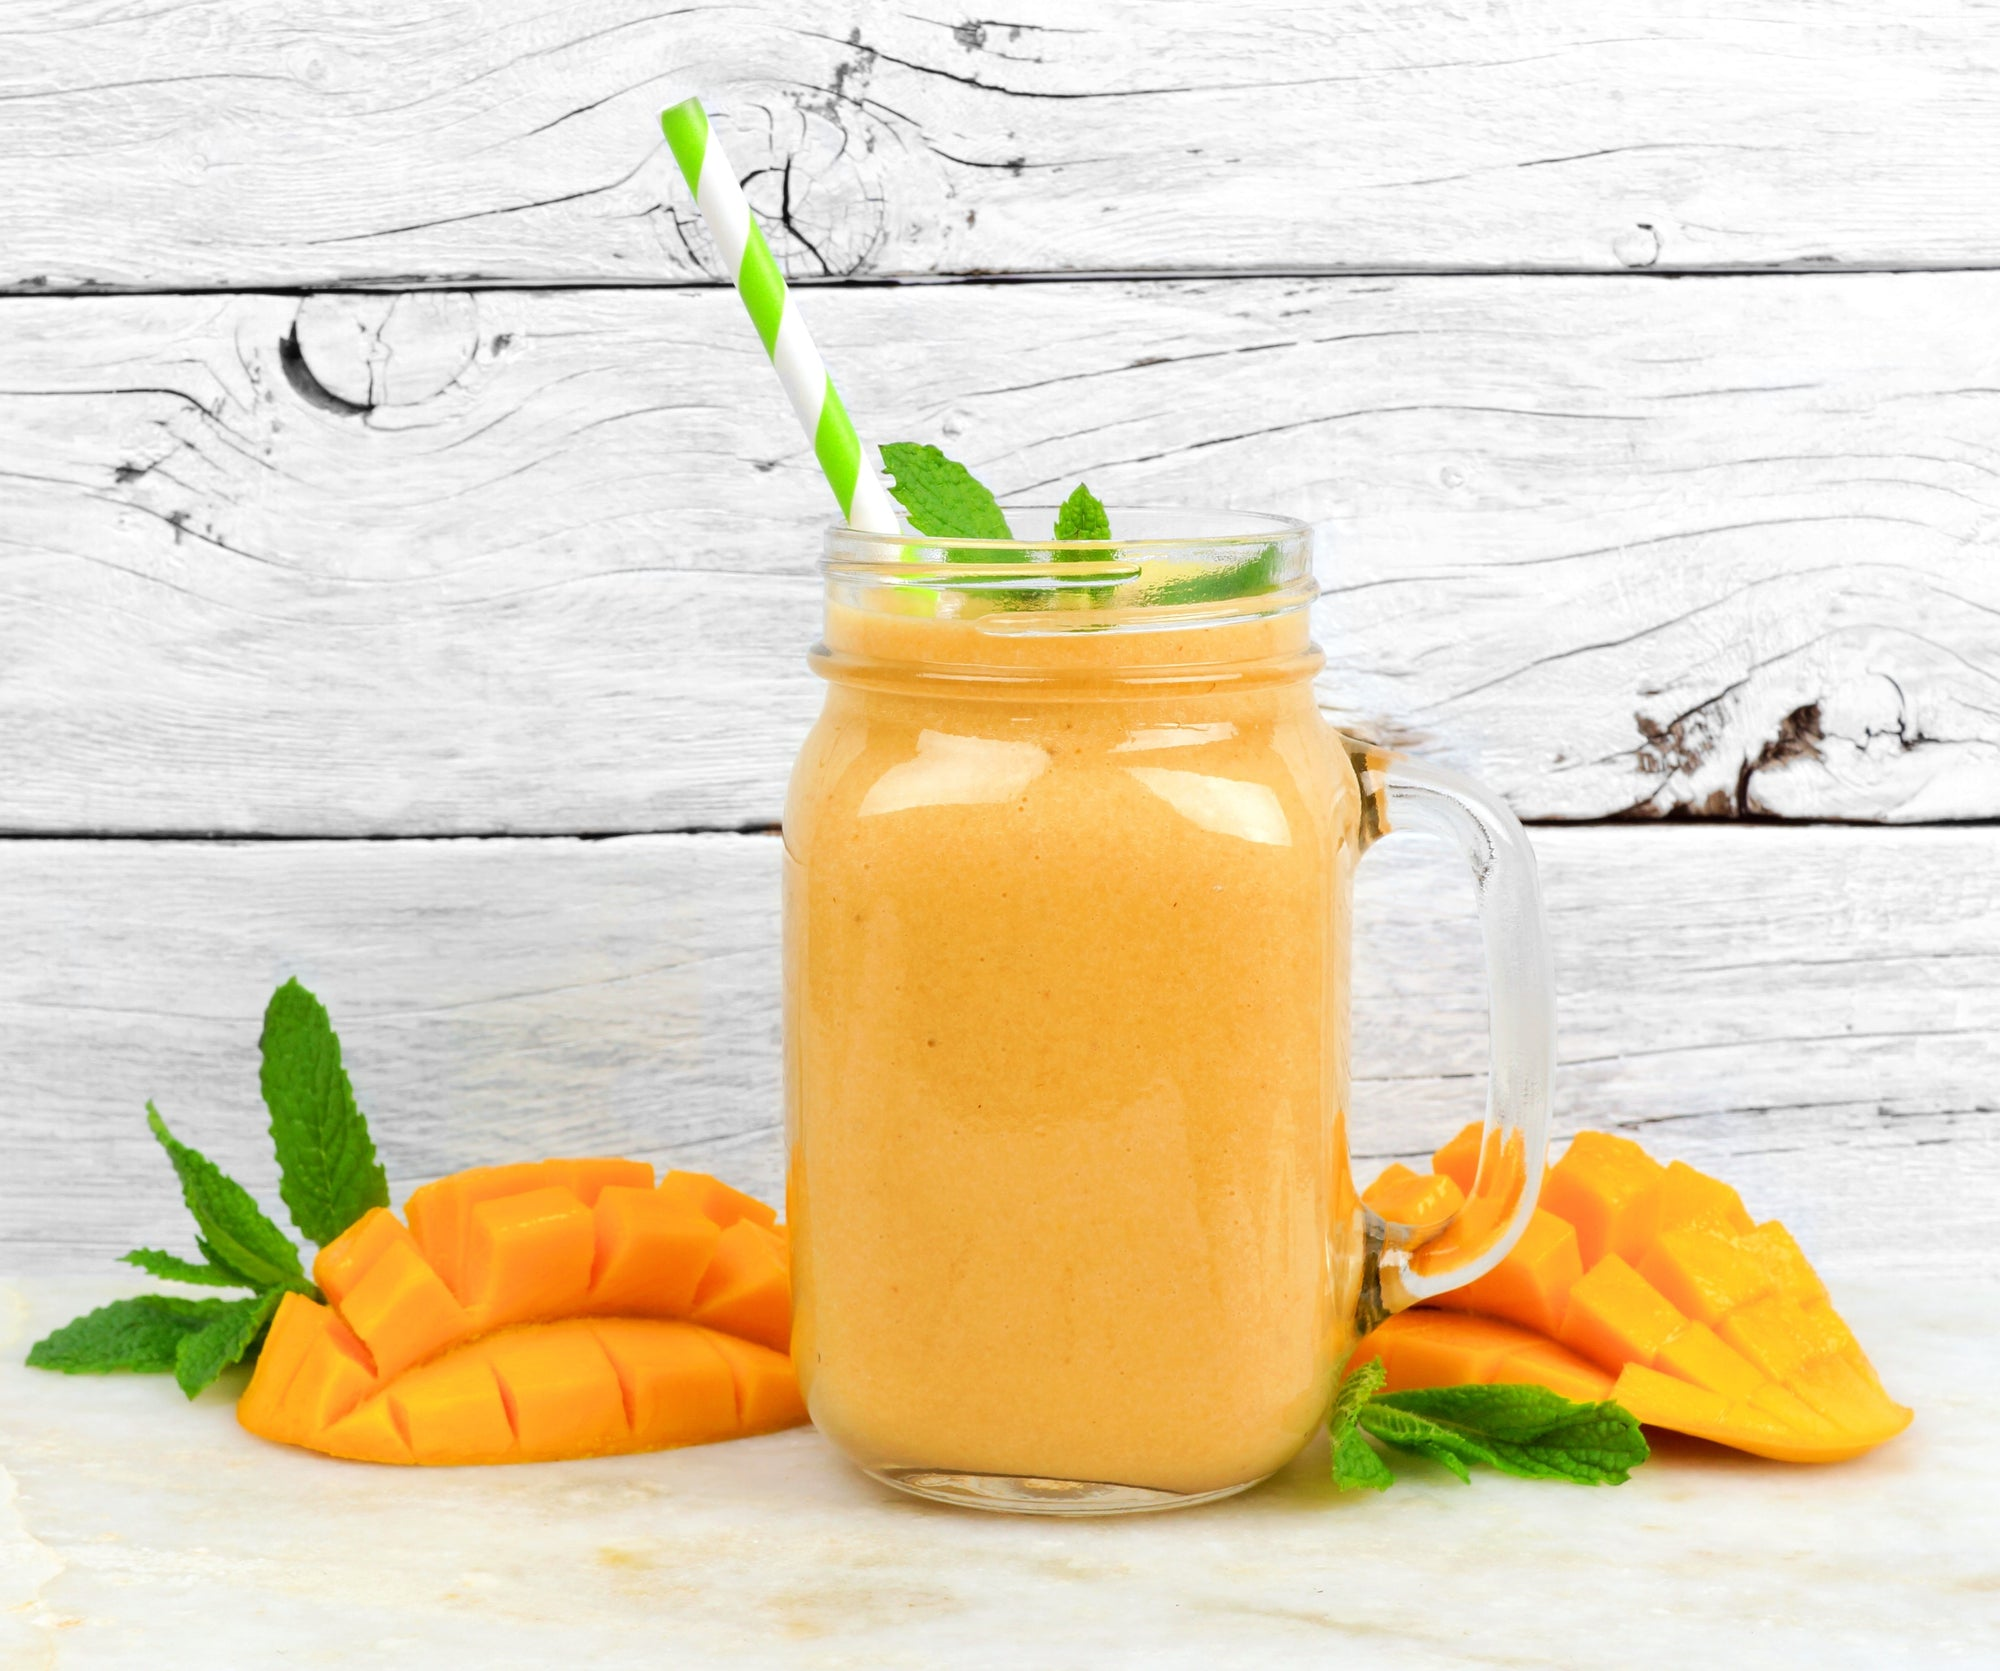 Michelle's Tropical Immunity Smoothie